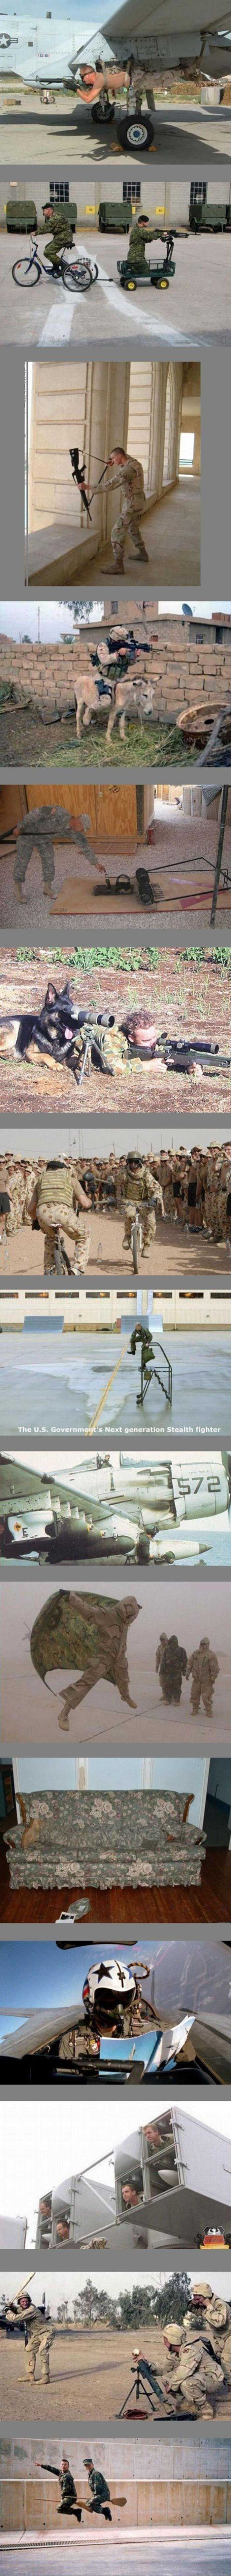 Soldiers having fun.